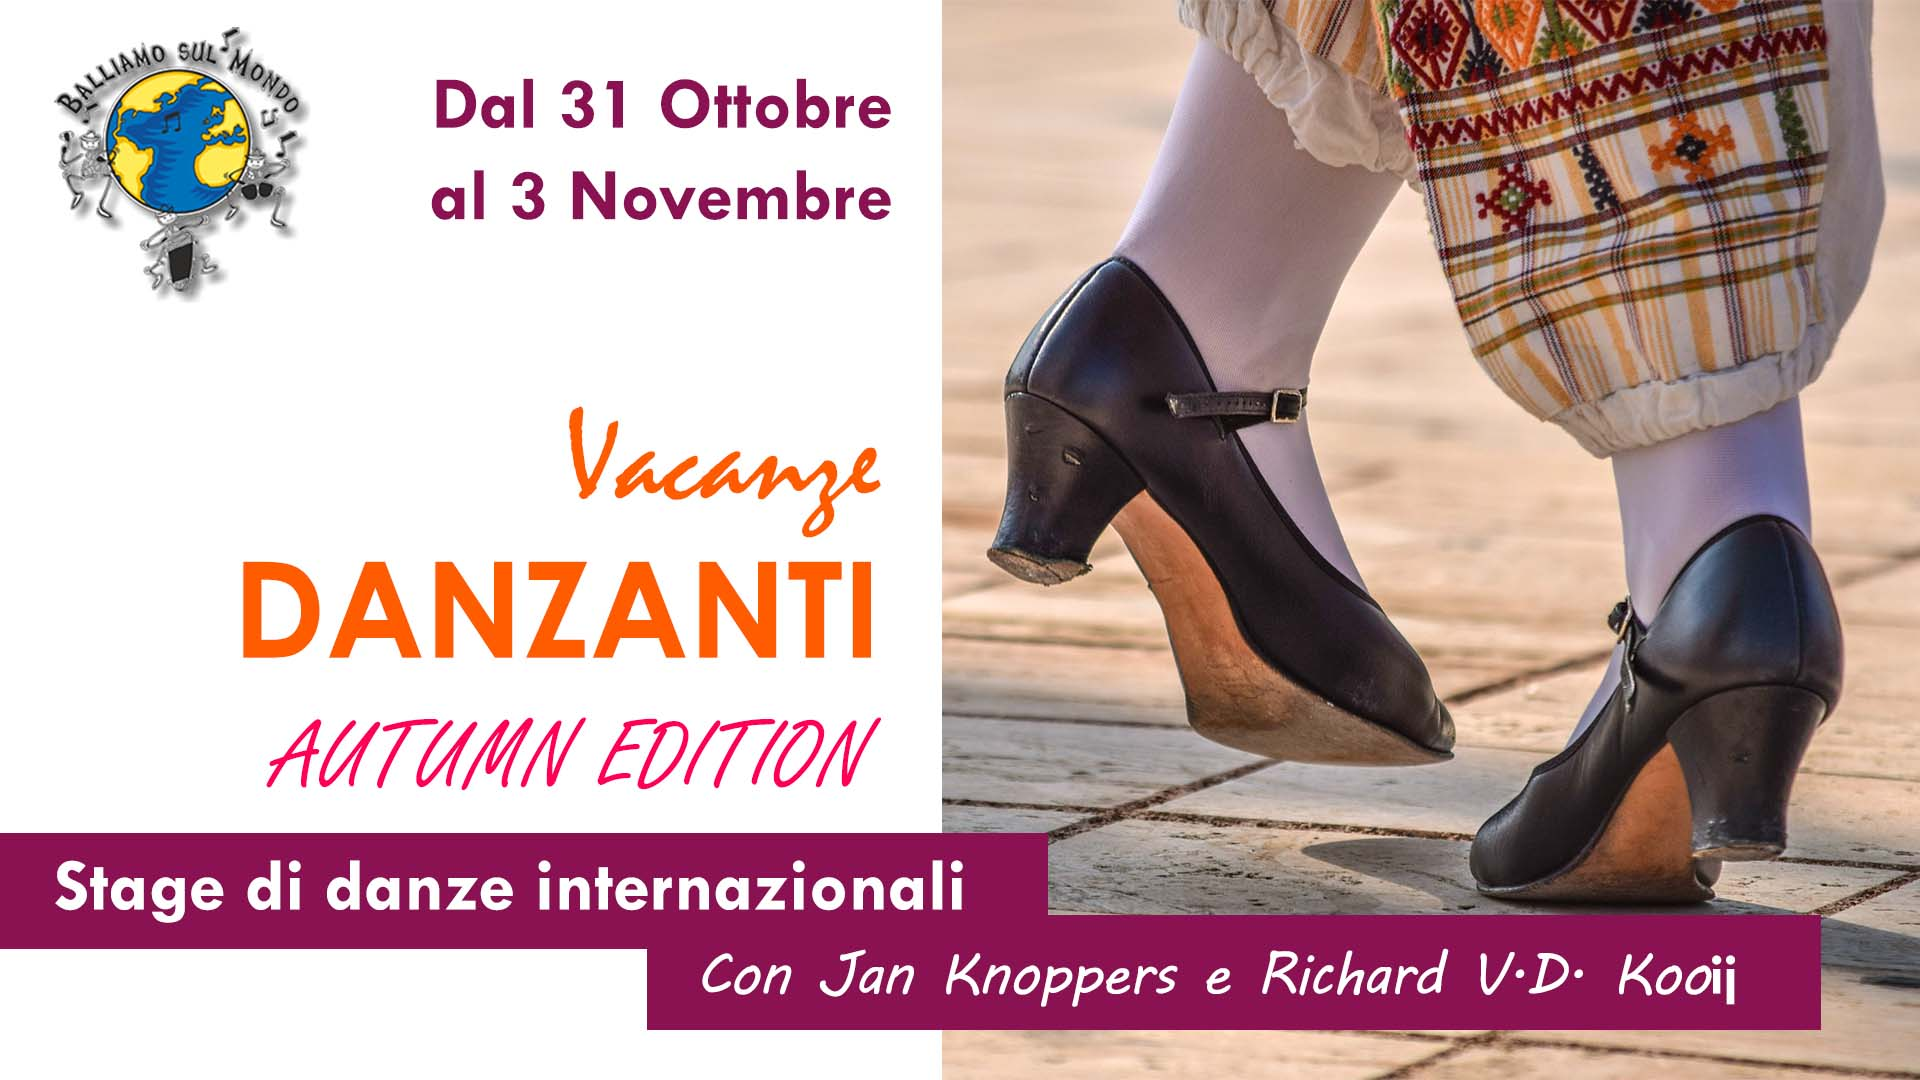 https://www.balliamosulmondo.net/vacanze-danzanti-autumn-edition/